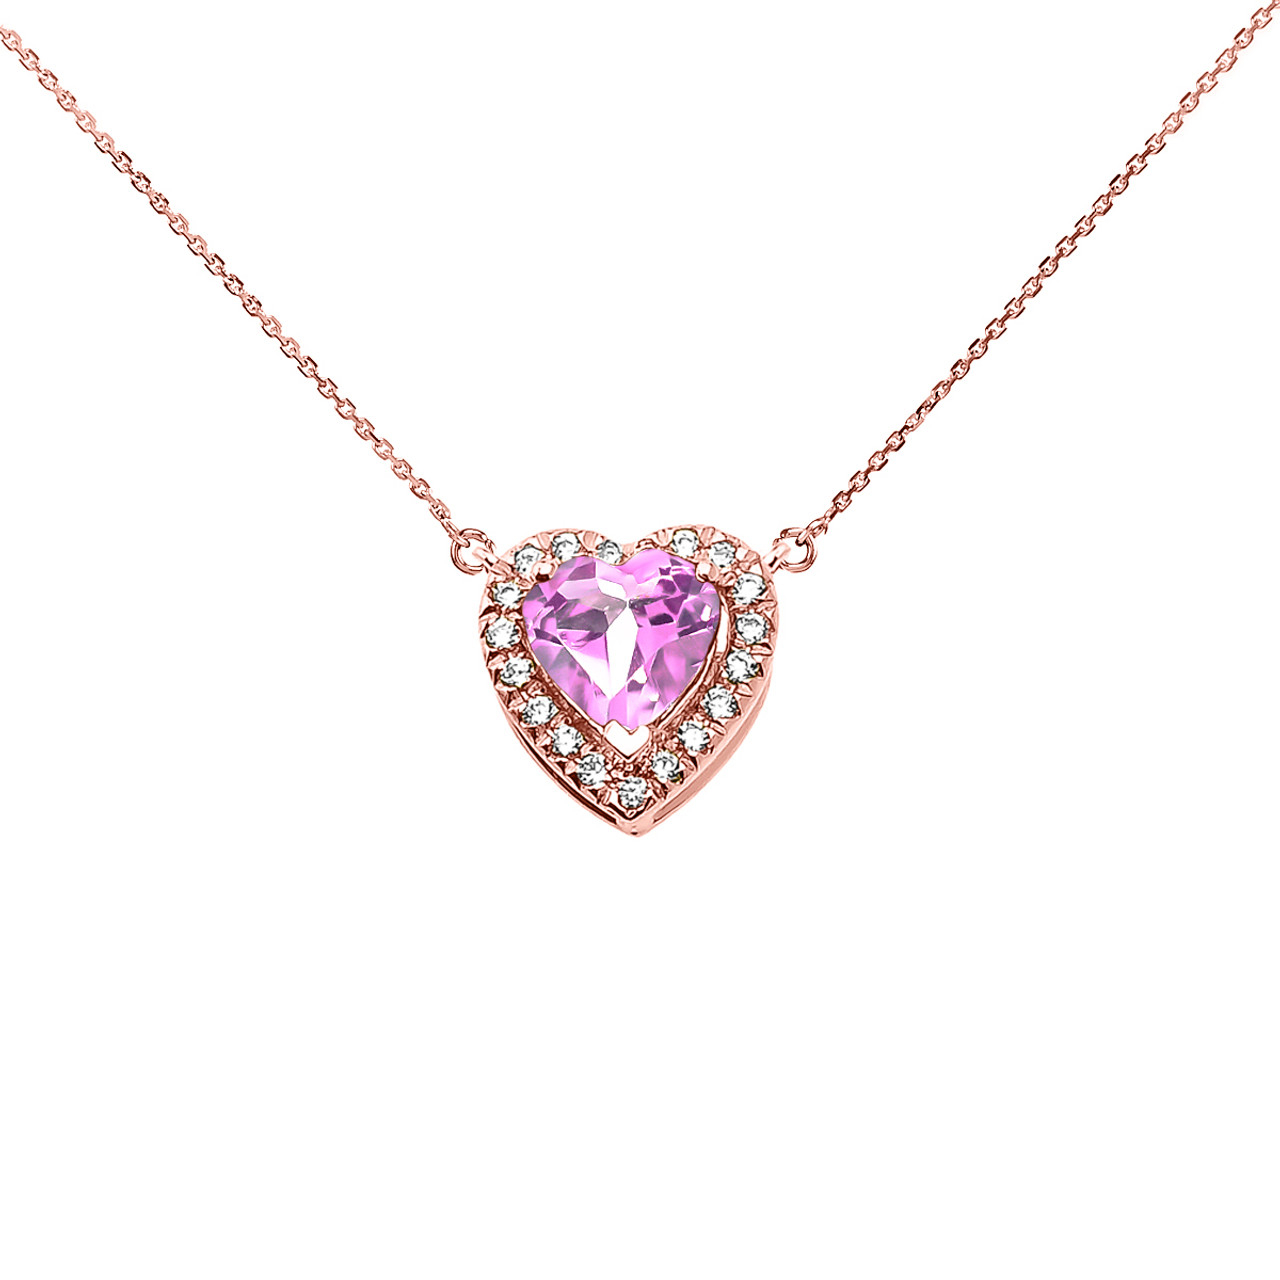 Elegant rose gold diamond and october birthstone cz pink heart elegant rose gold diamond and october birthstone cz pink heart solitaire necklace audiocablefo